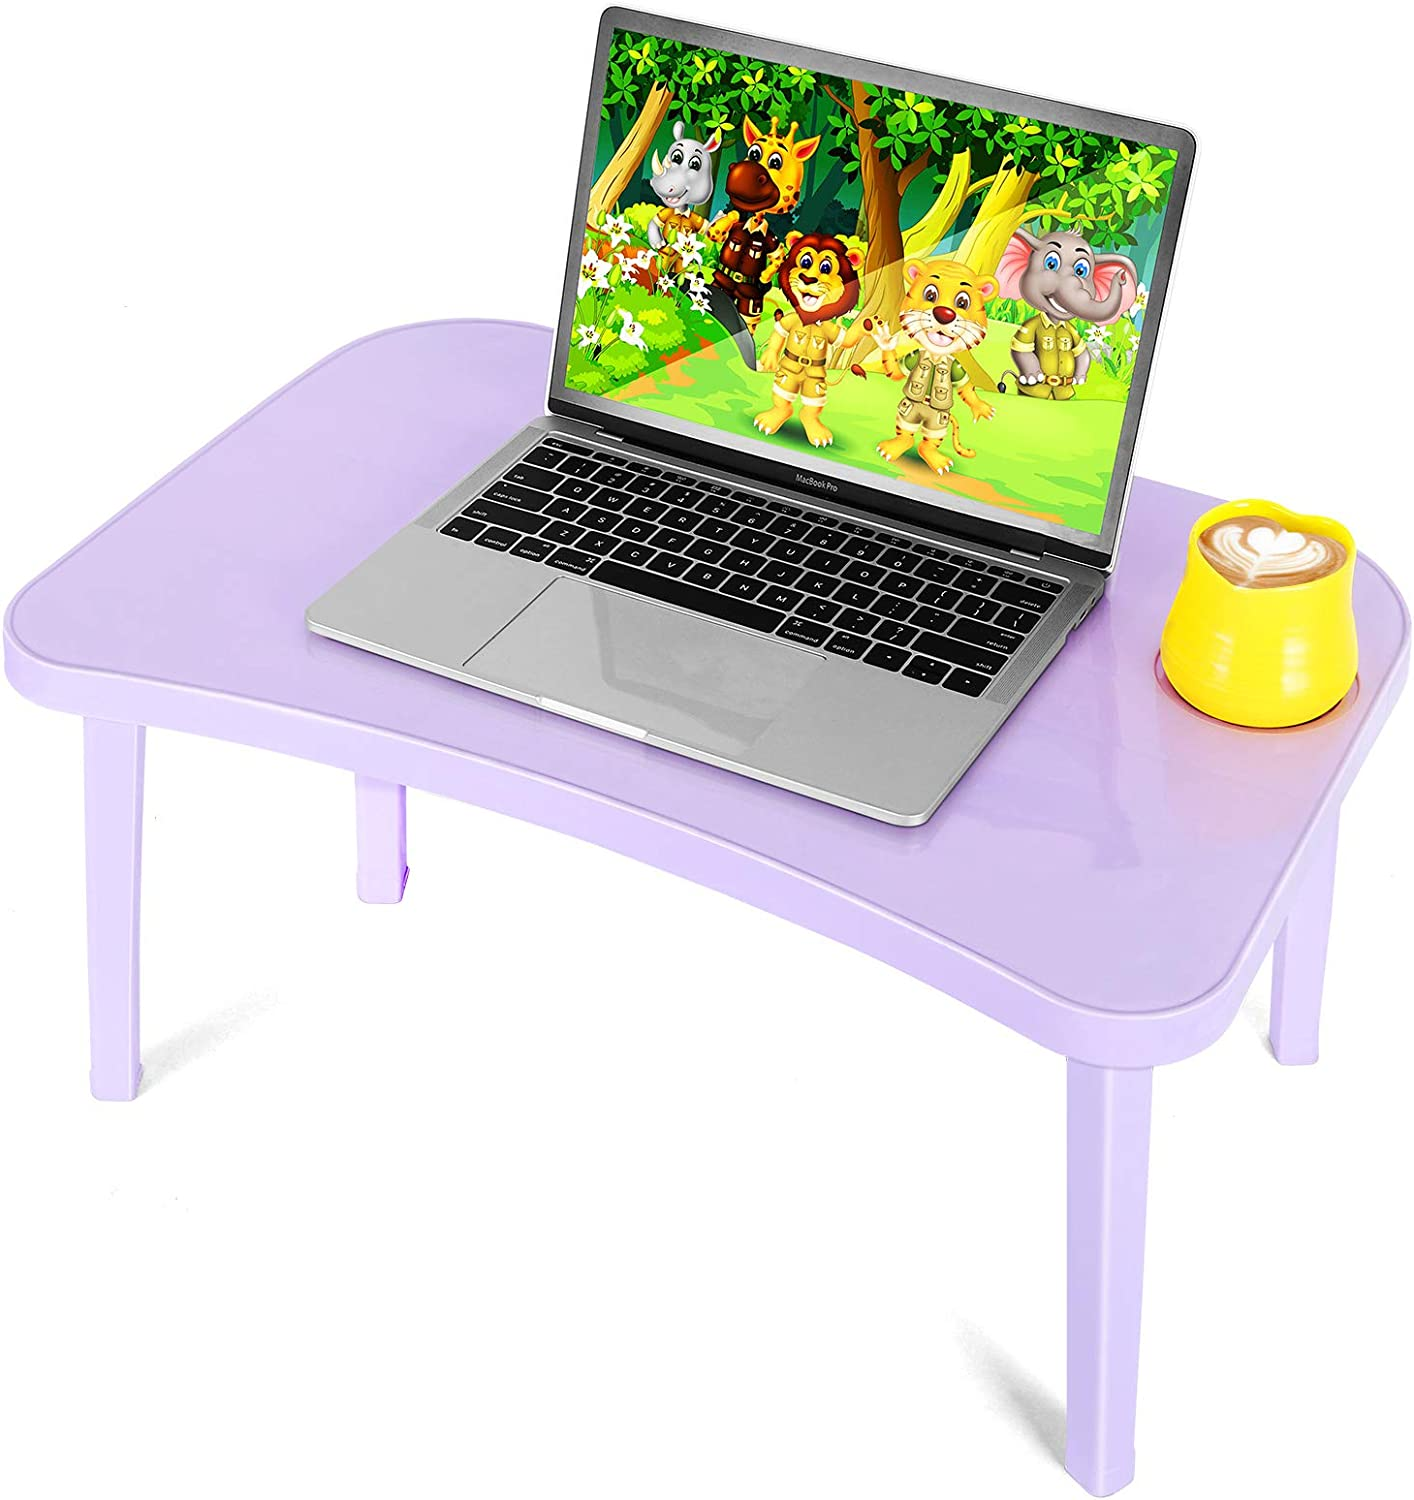 Laptop Table for Bed- Lap Desk for Kids Bed Trays for Eating and Laptops Portable Plastic Laptop Desk is Very Light and Easy to Fold, Great for Kids, Adults, Boys, Girls (Purple)